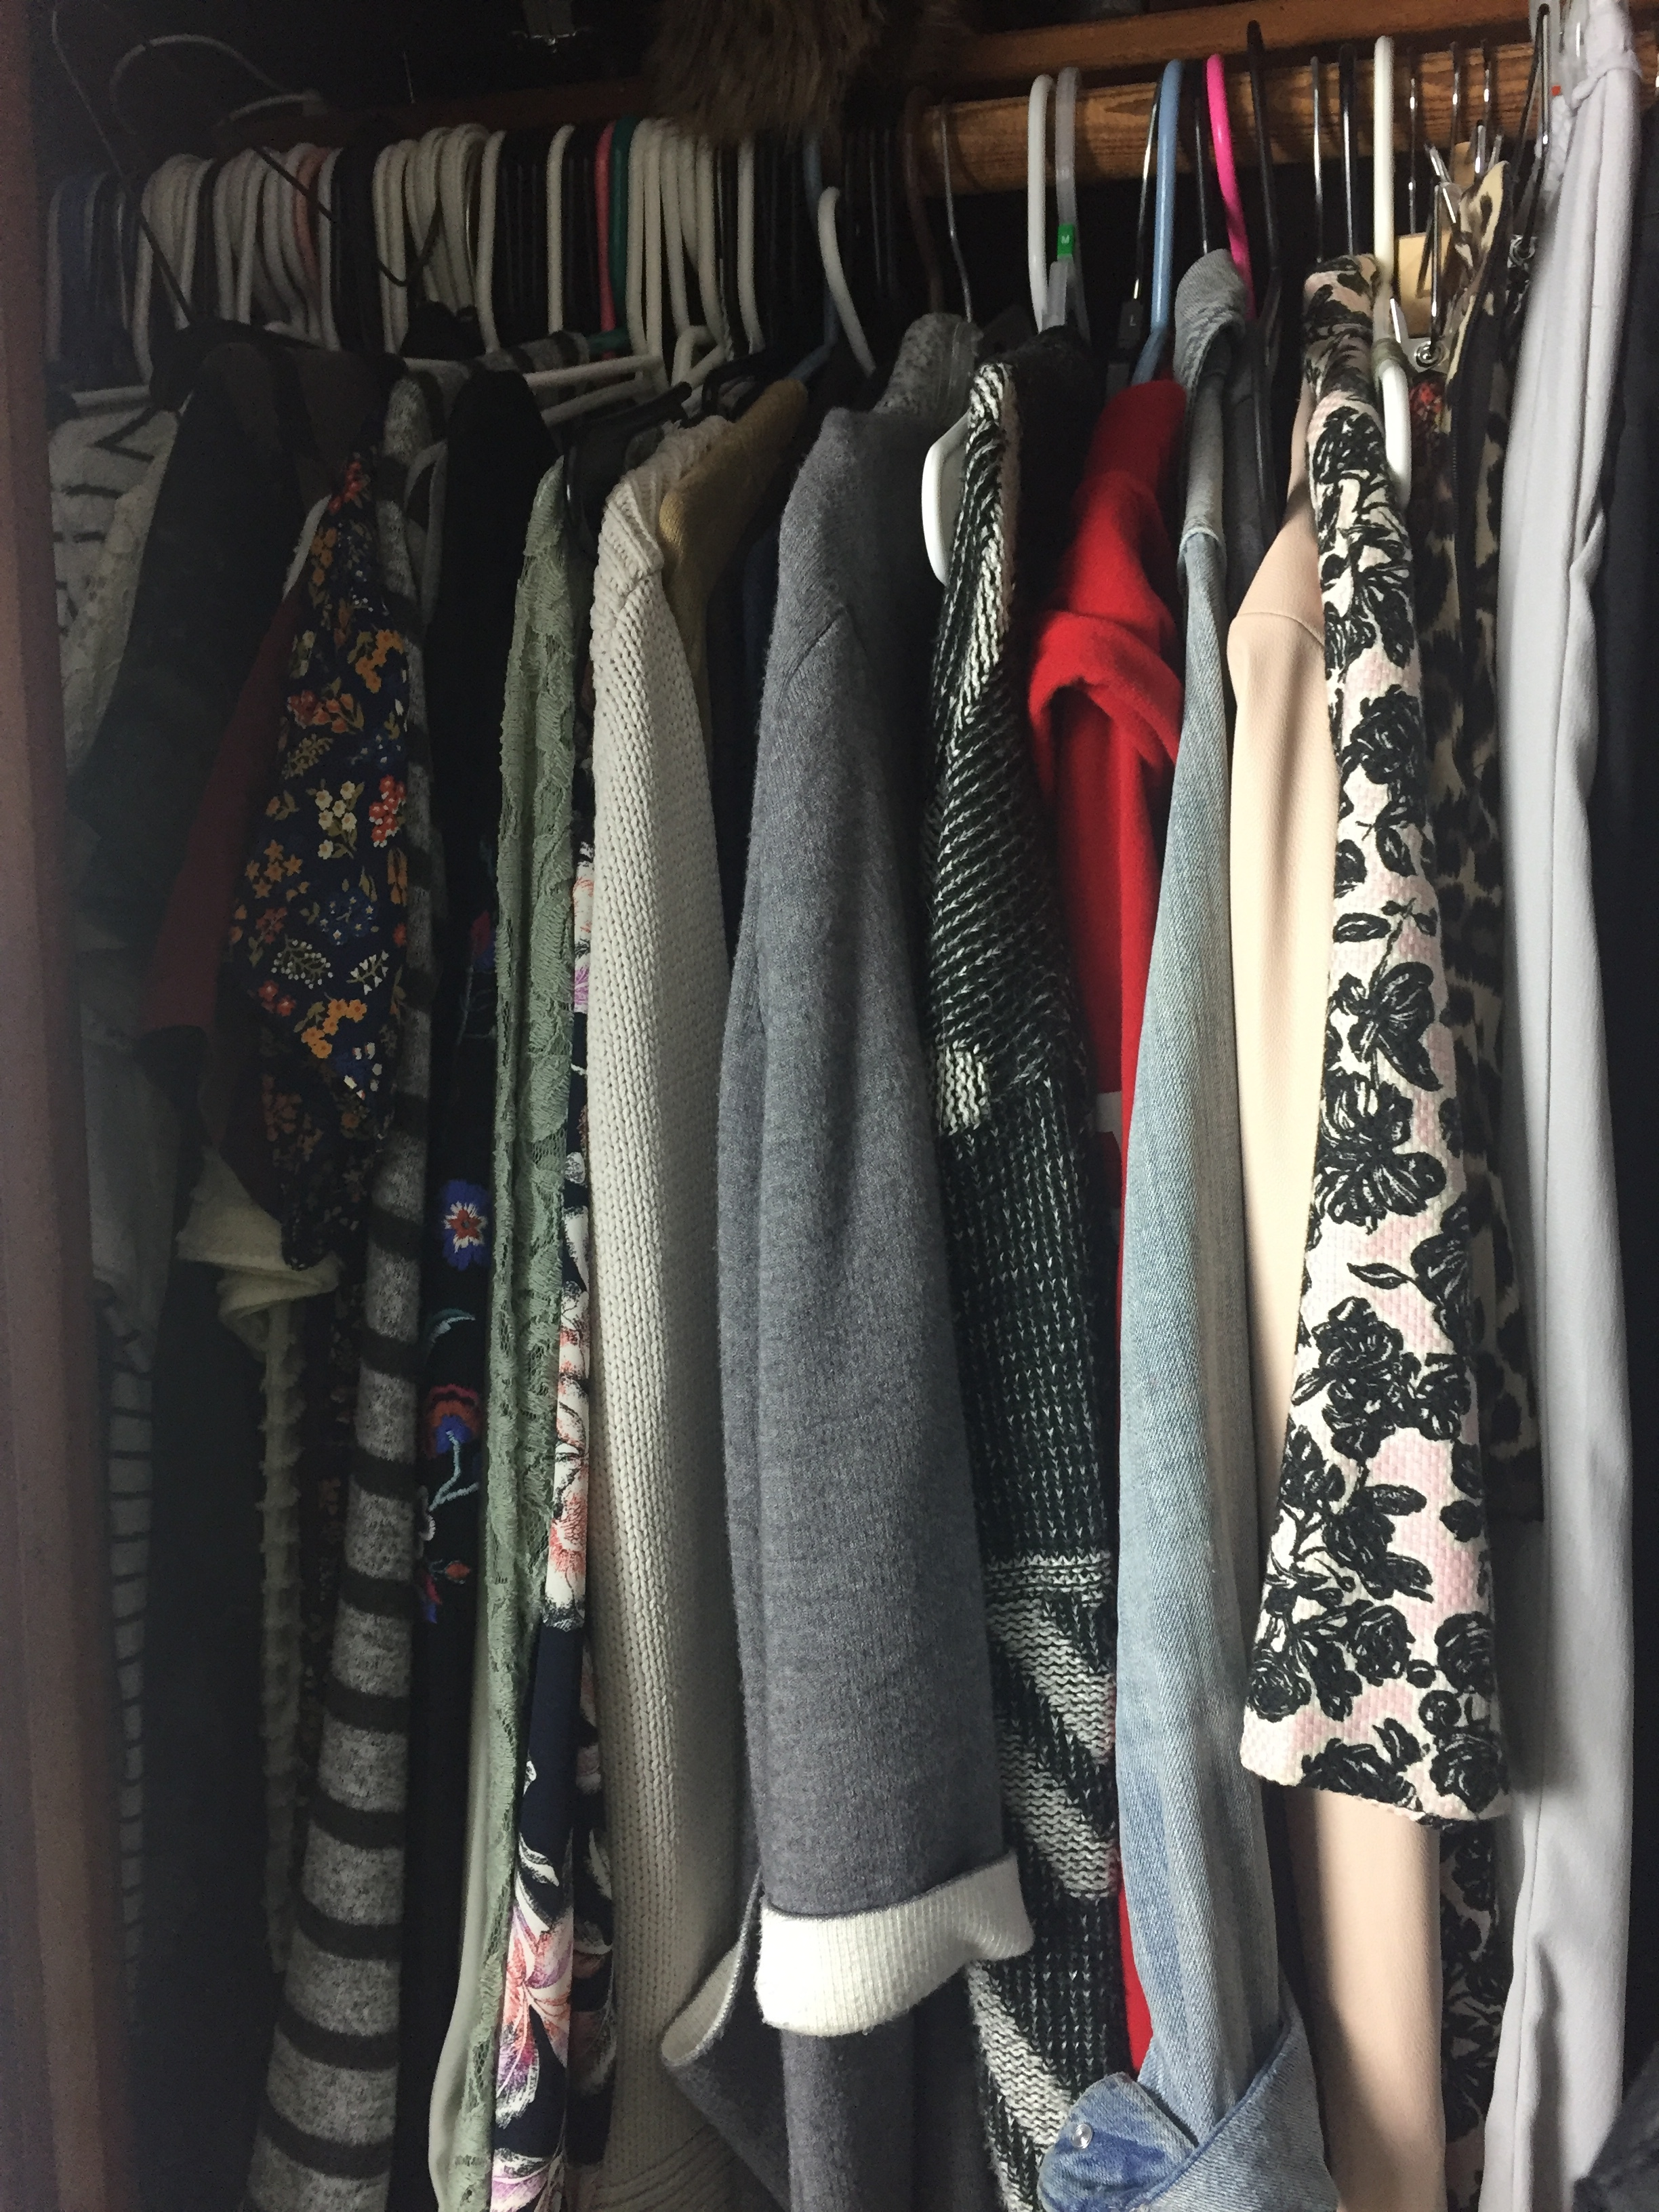 Clothes disappearing into the depths of the closet.